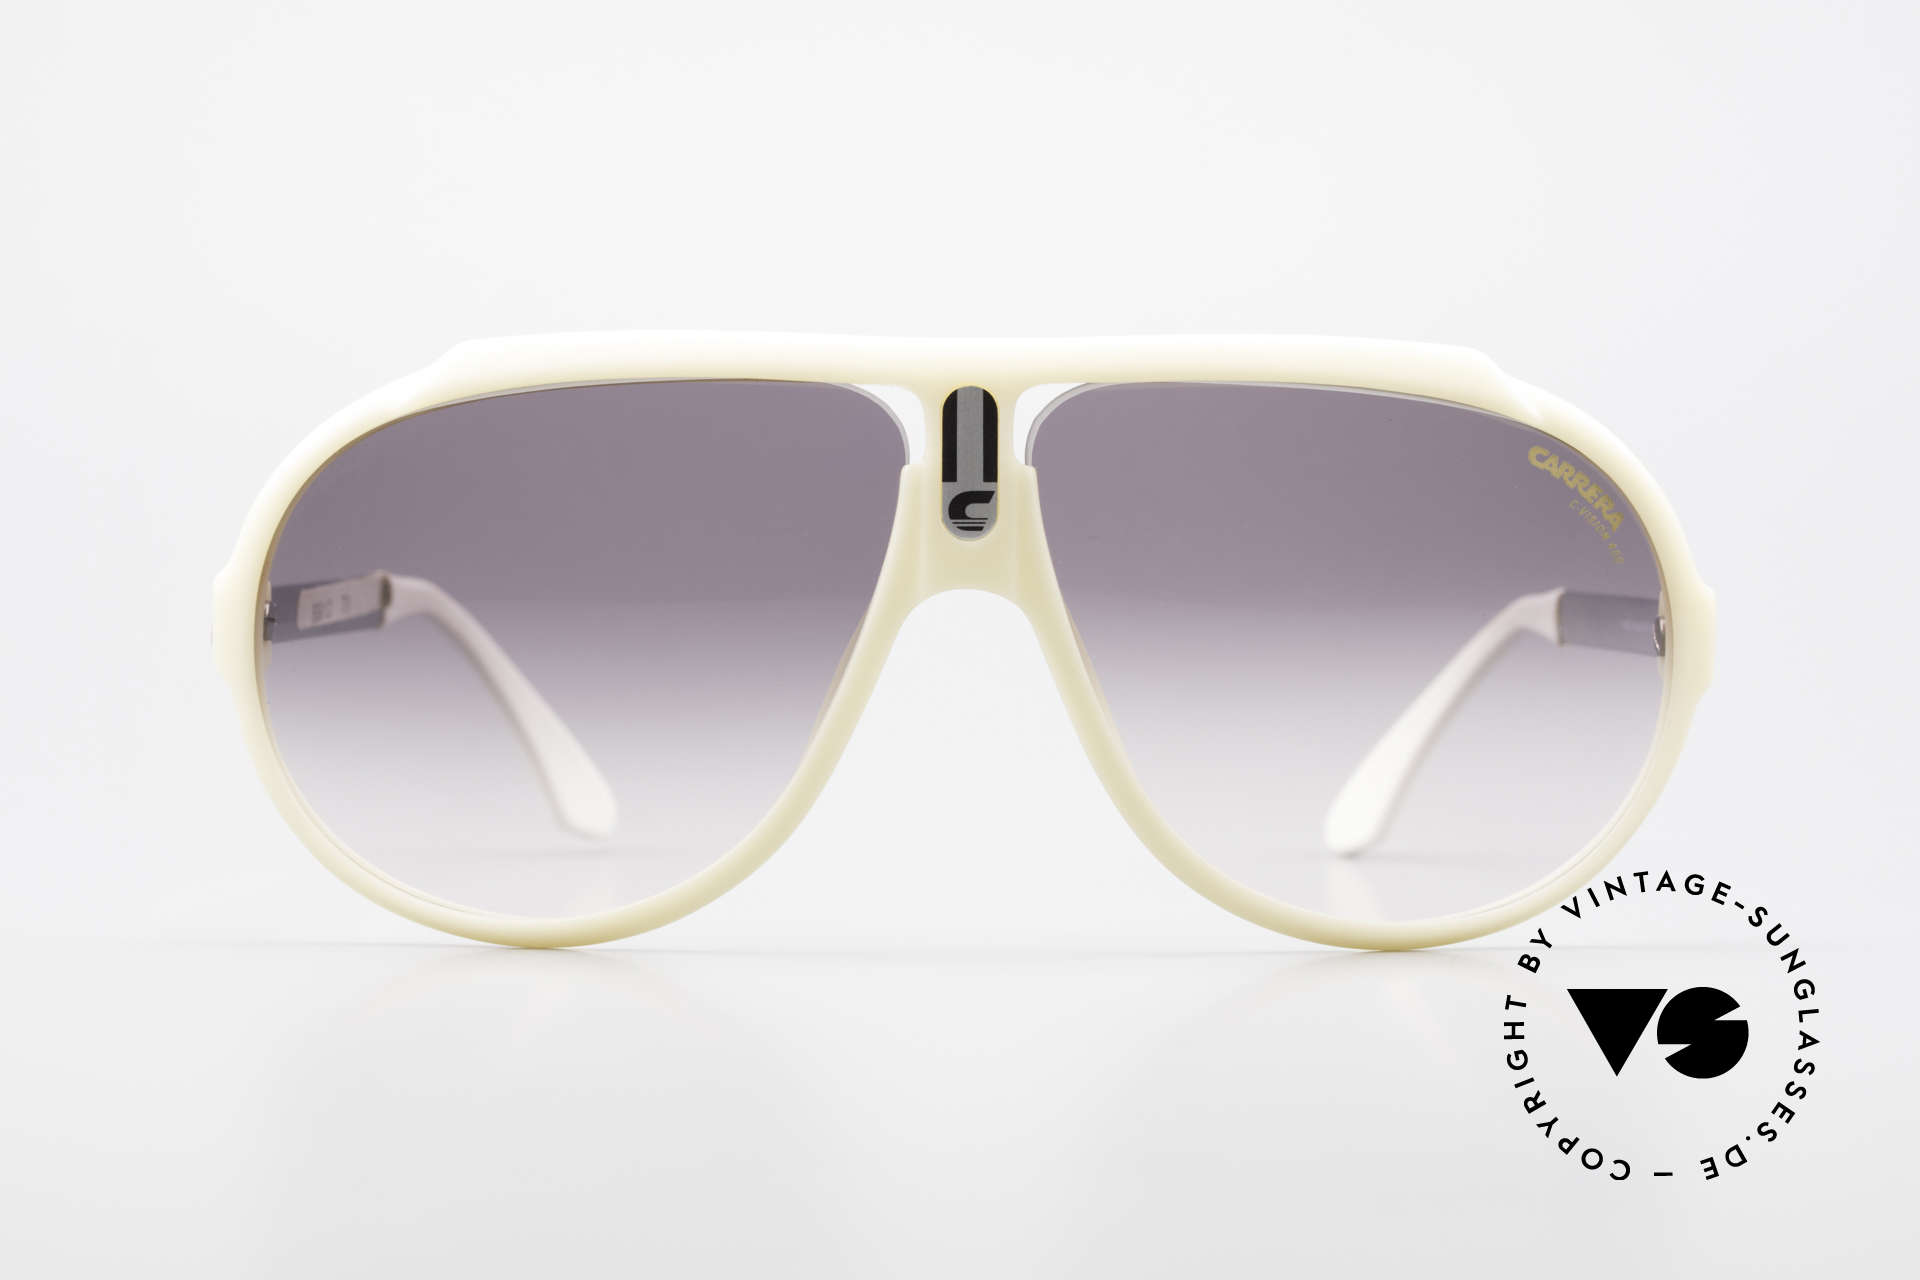 Carrera 5512 Don Johnson Sunglasses 80's, famous movie sunglasses from 1984 (a true legend !!!), Made for Men